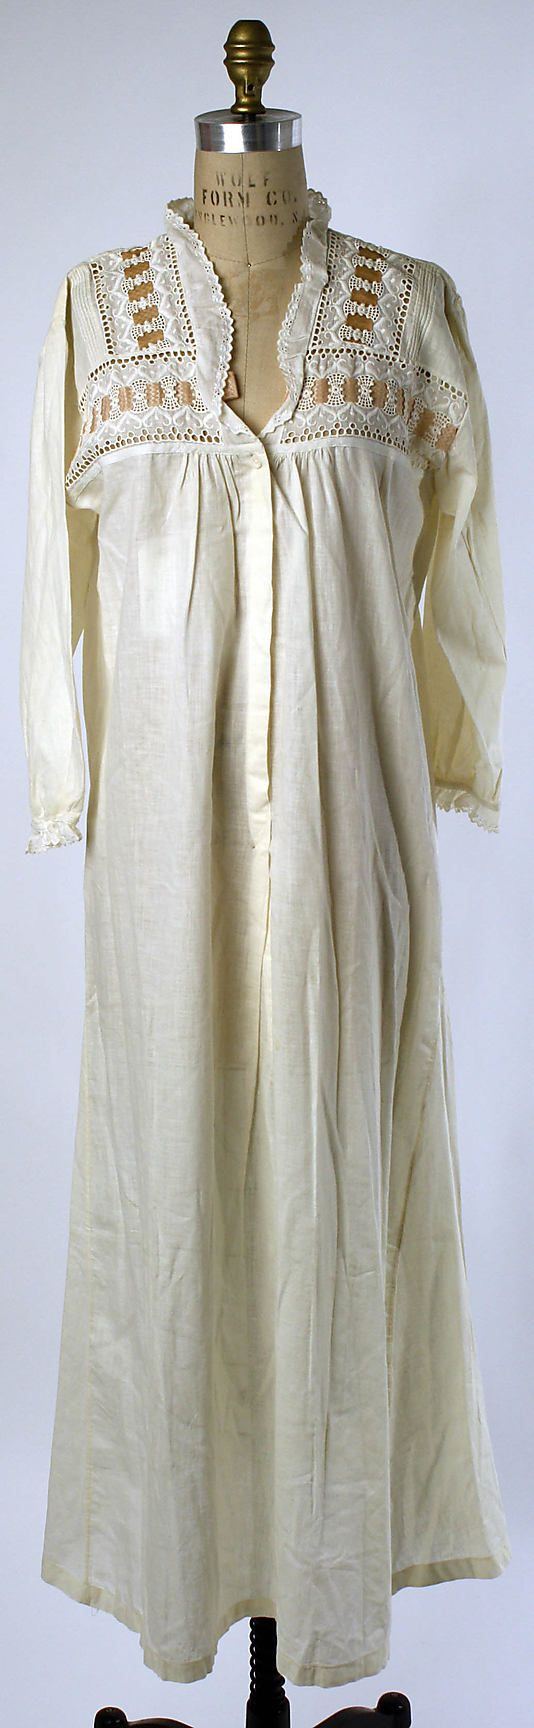 "Cotton Nightgown, 1910's - That would be perfect now.  I will have to find a pattern and see if my sister will ""help me"" make one..."